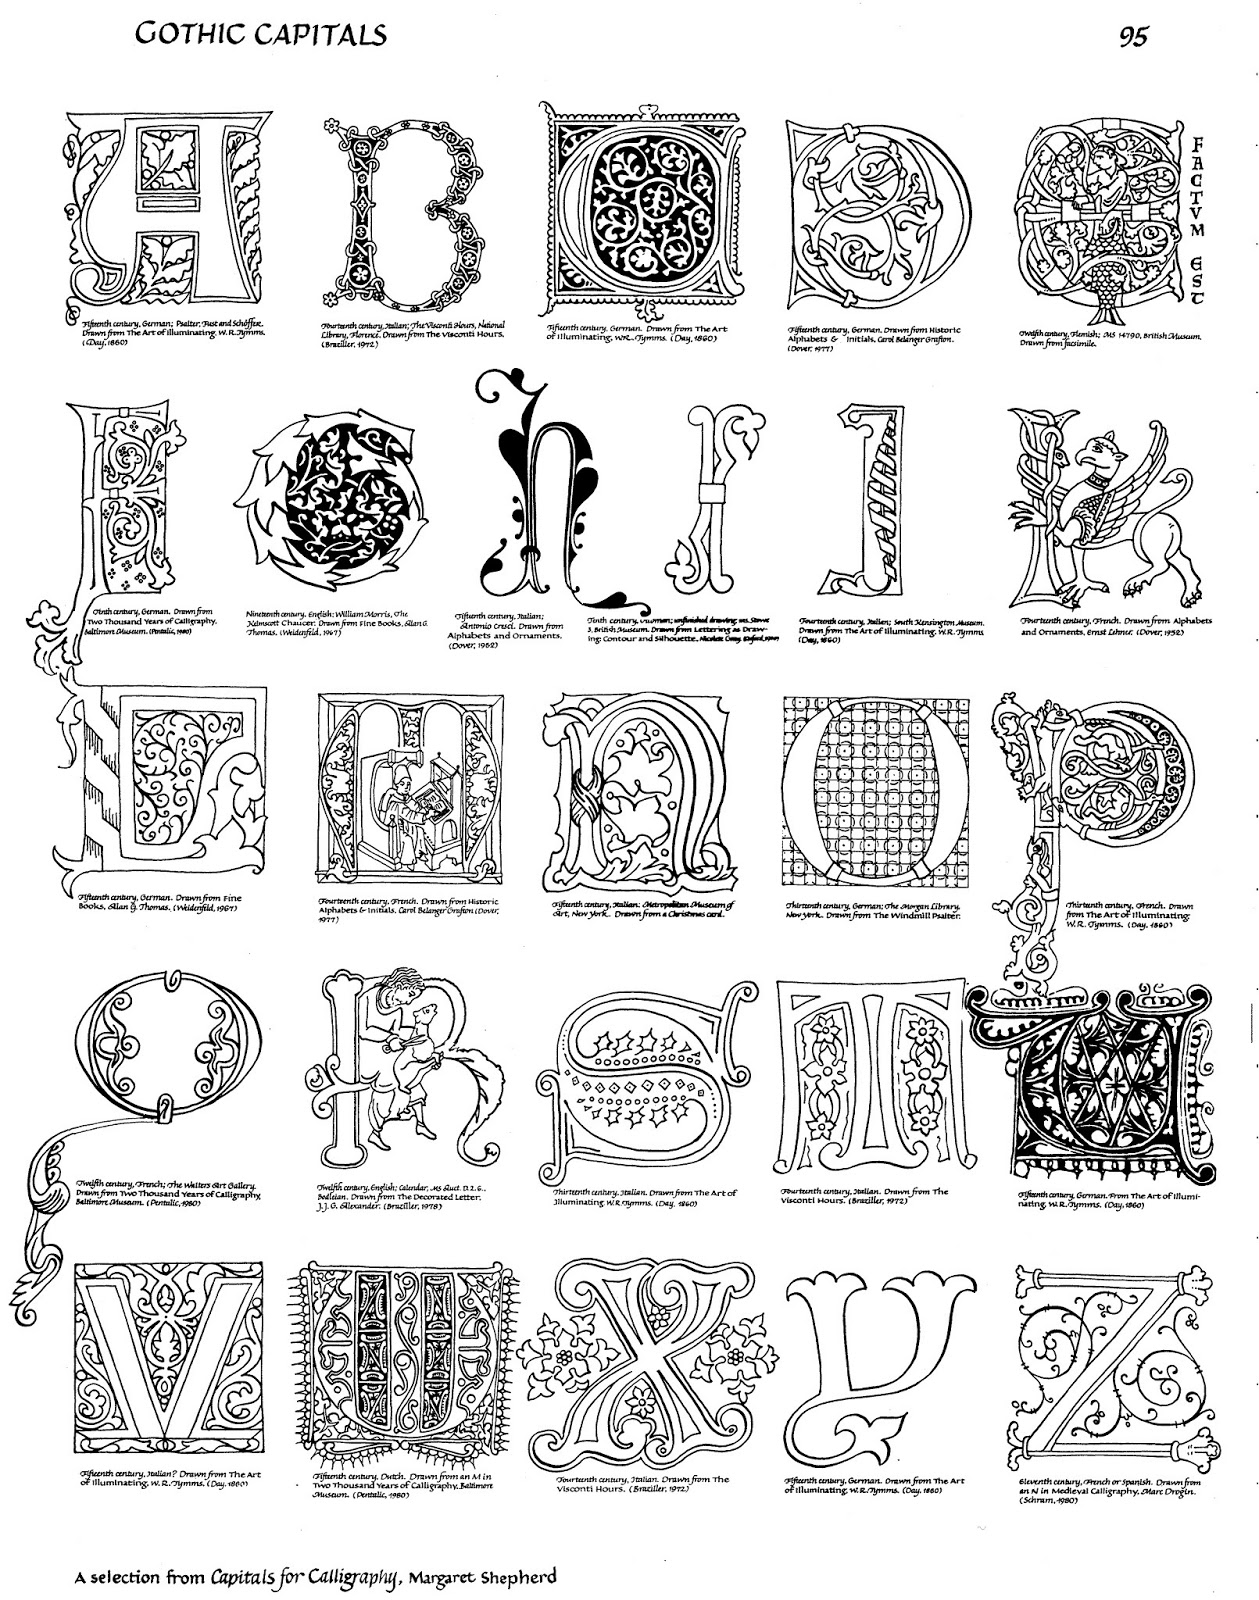 2011 07 01 archive besides 17803361003984185 together with 212 Surreal Perspectives in addition Alphabet together with 2013 05 01 archive. on medieval illumination letter c art